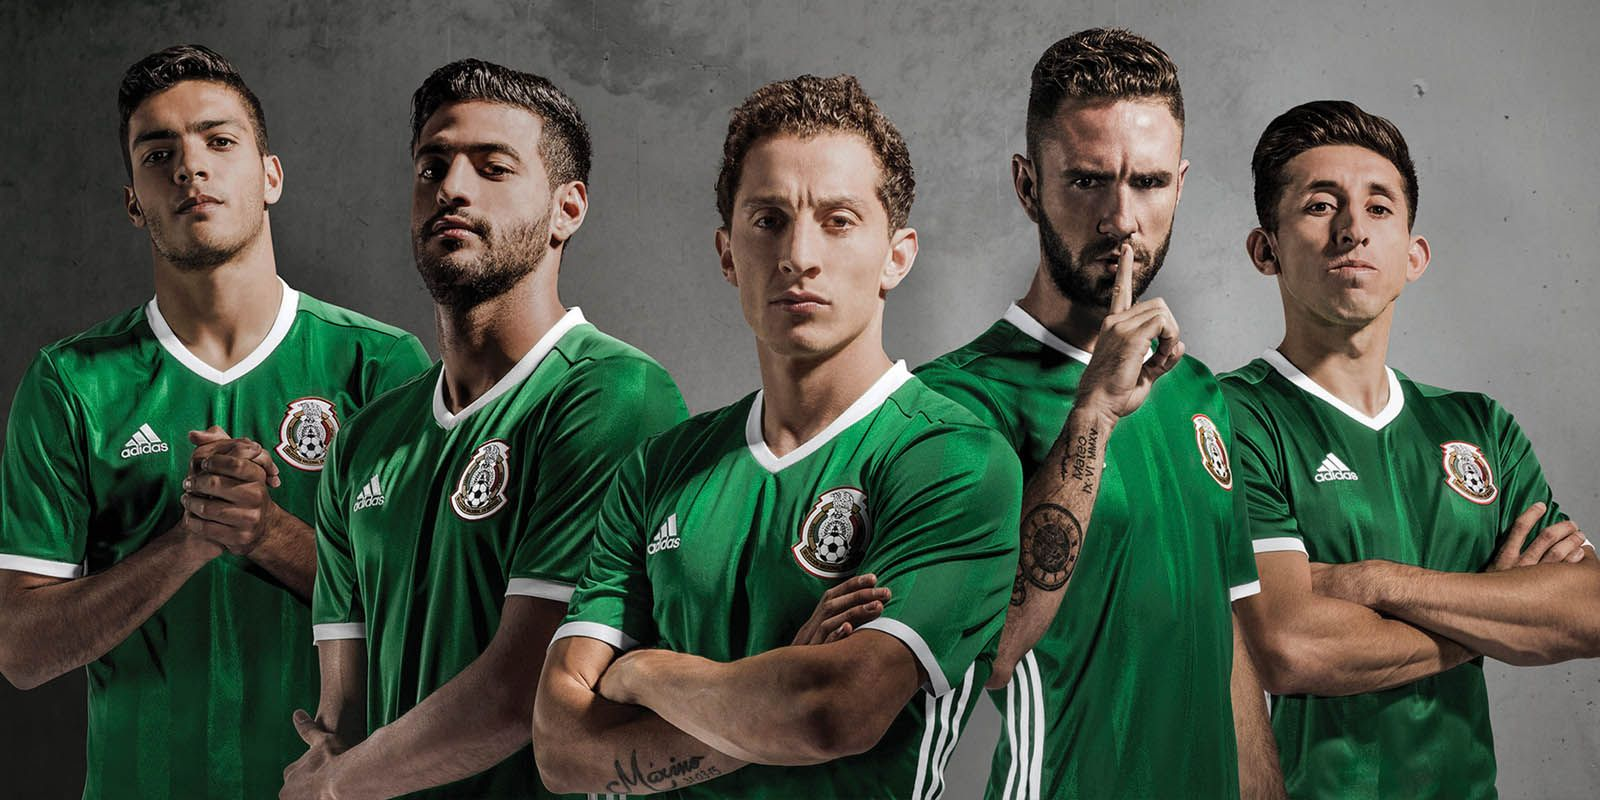 ca8a99be9 The new Mexico 2016 Copa America home kit is green with subtle accents